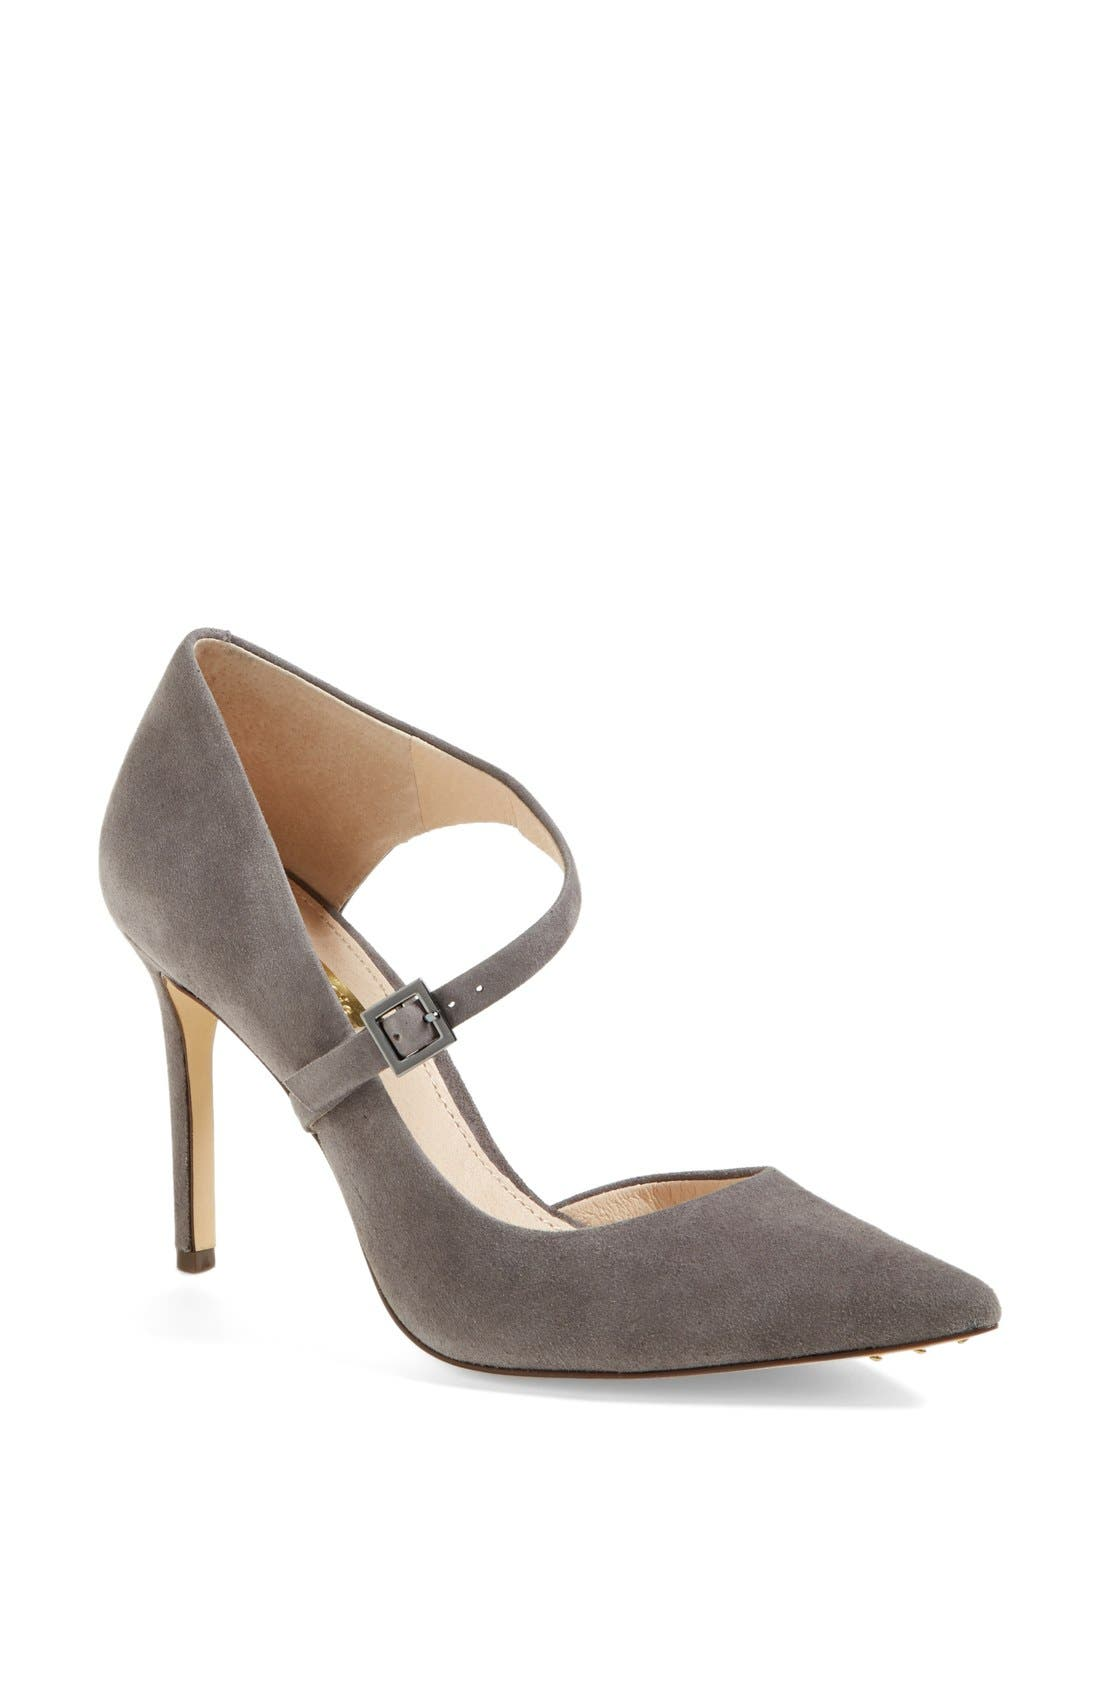 Main Image - Louise et Cie 'Inulya' Pump (Women)